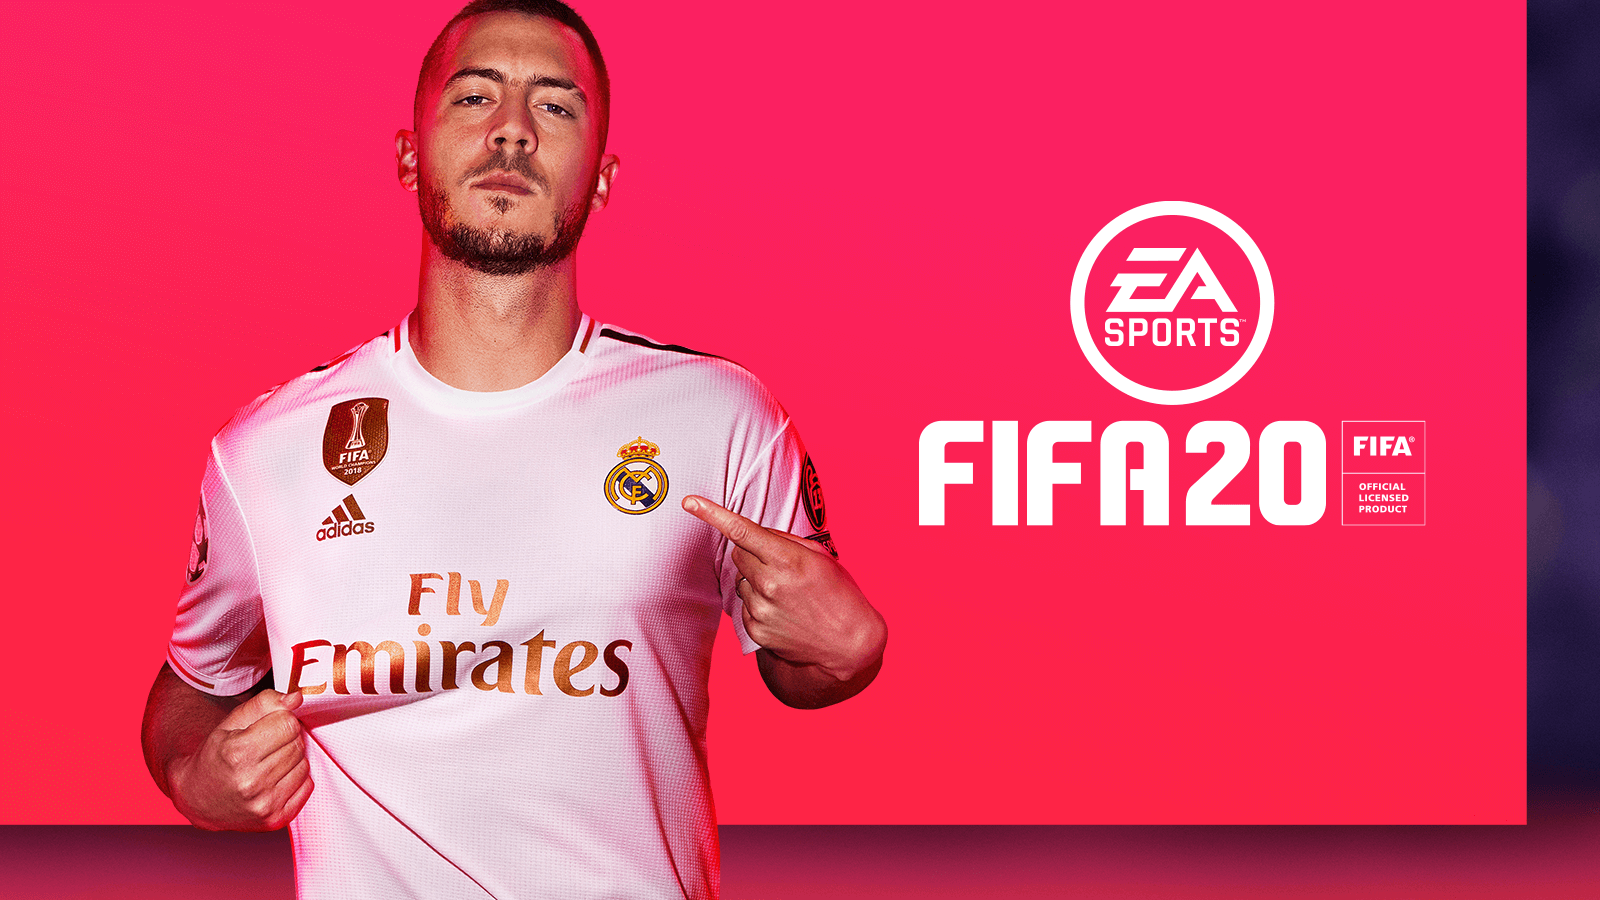 🔥  FIFA 20 (GLOBAL) ✅MULTILANG | KEYS AVAILABLE